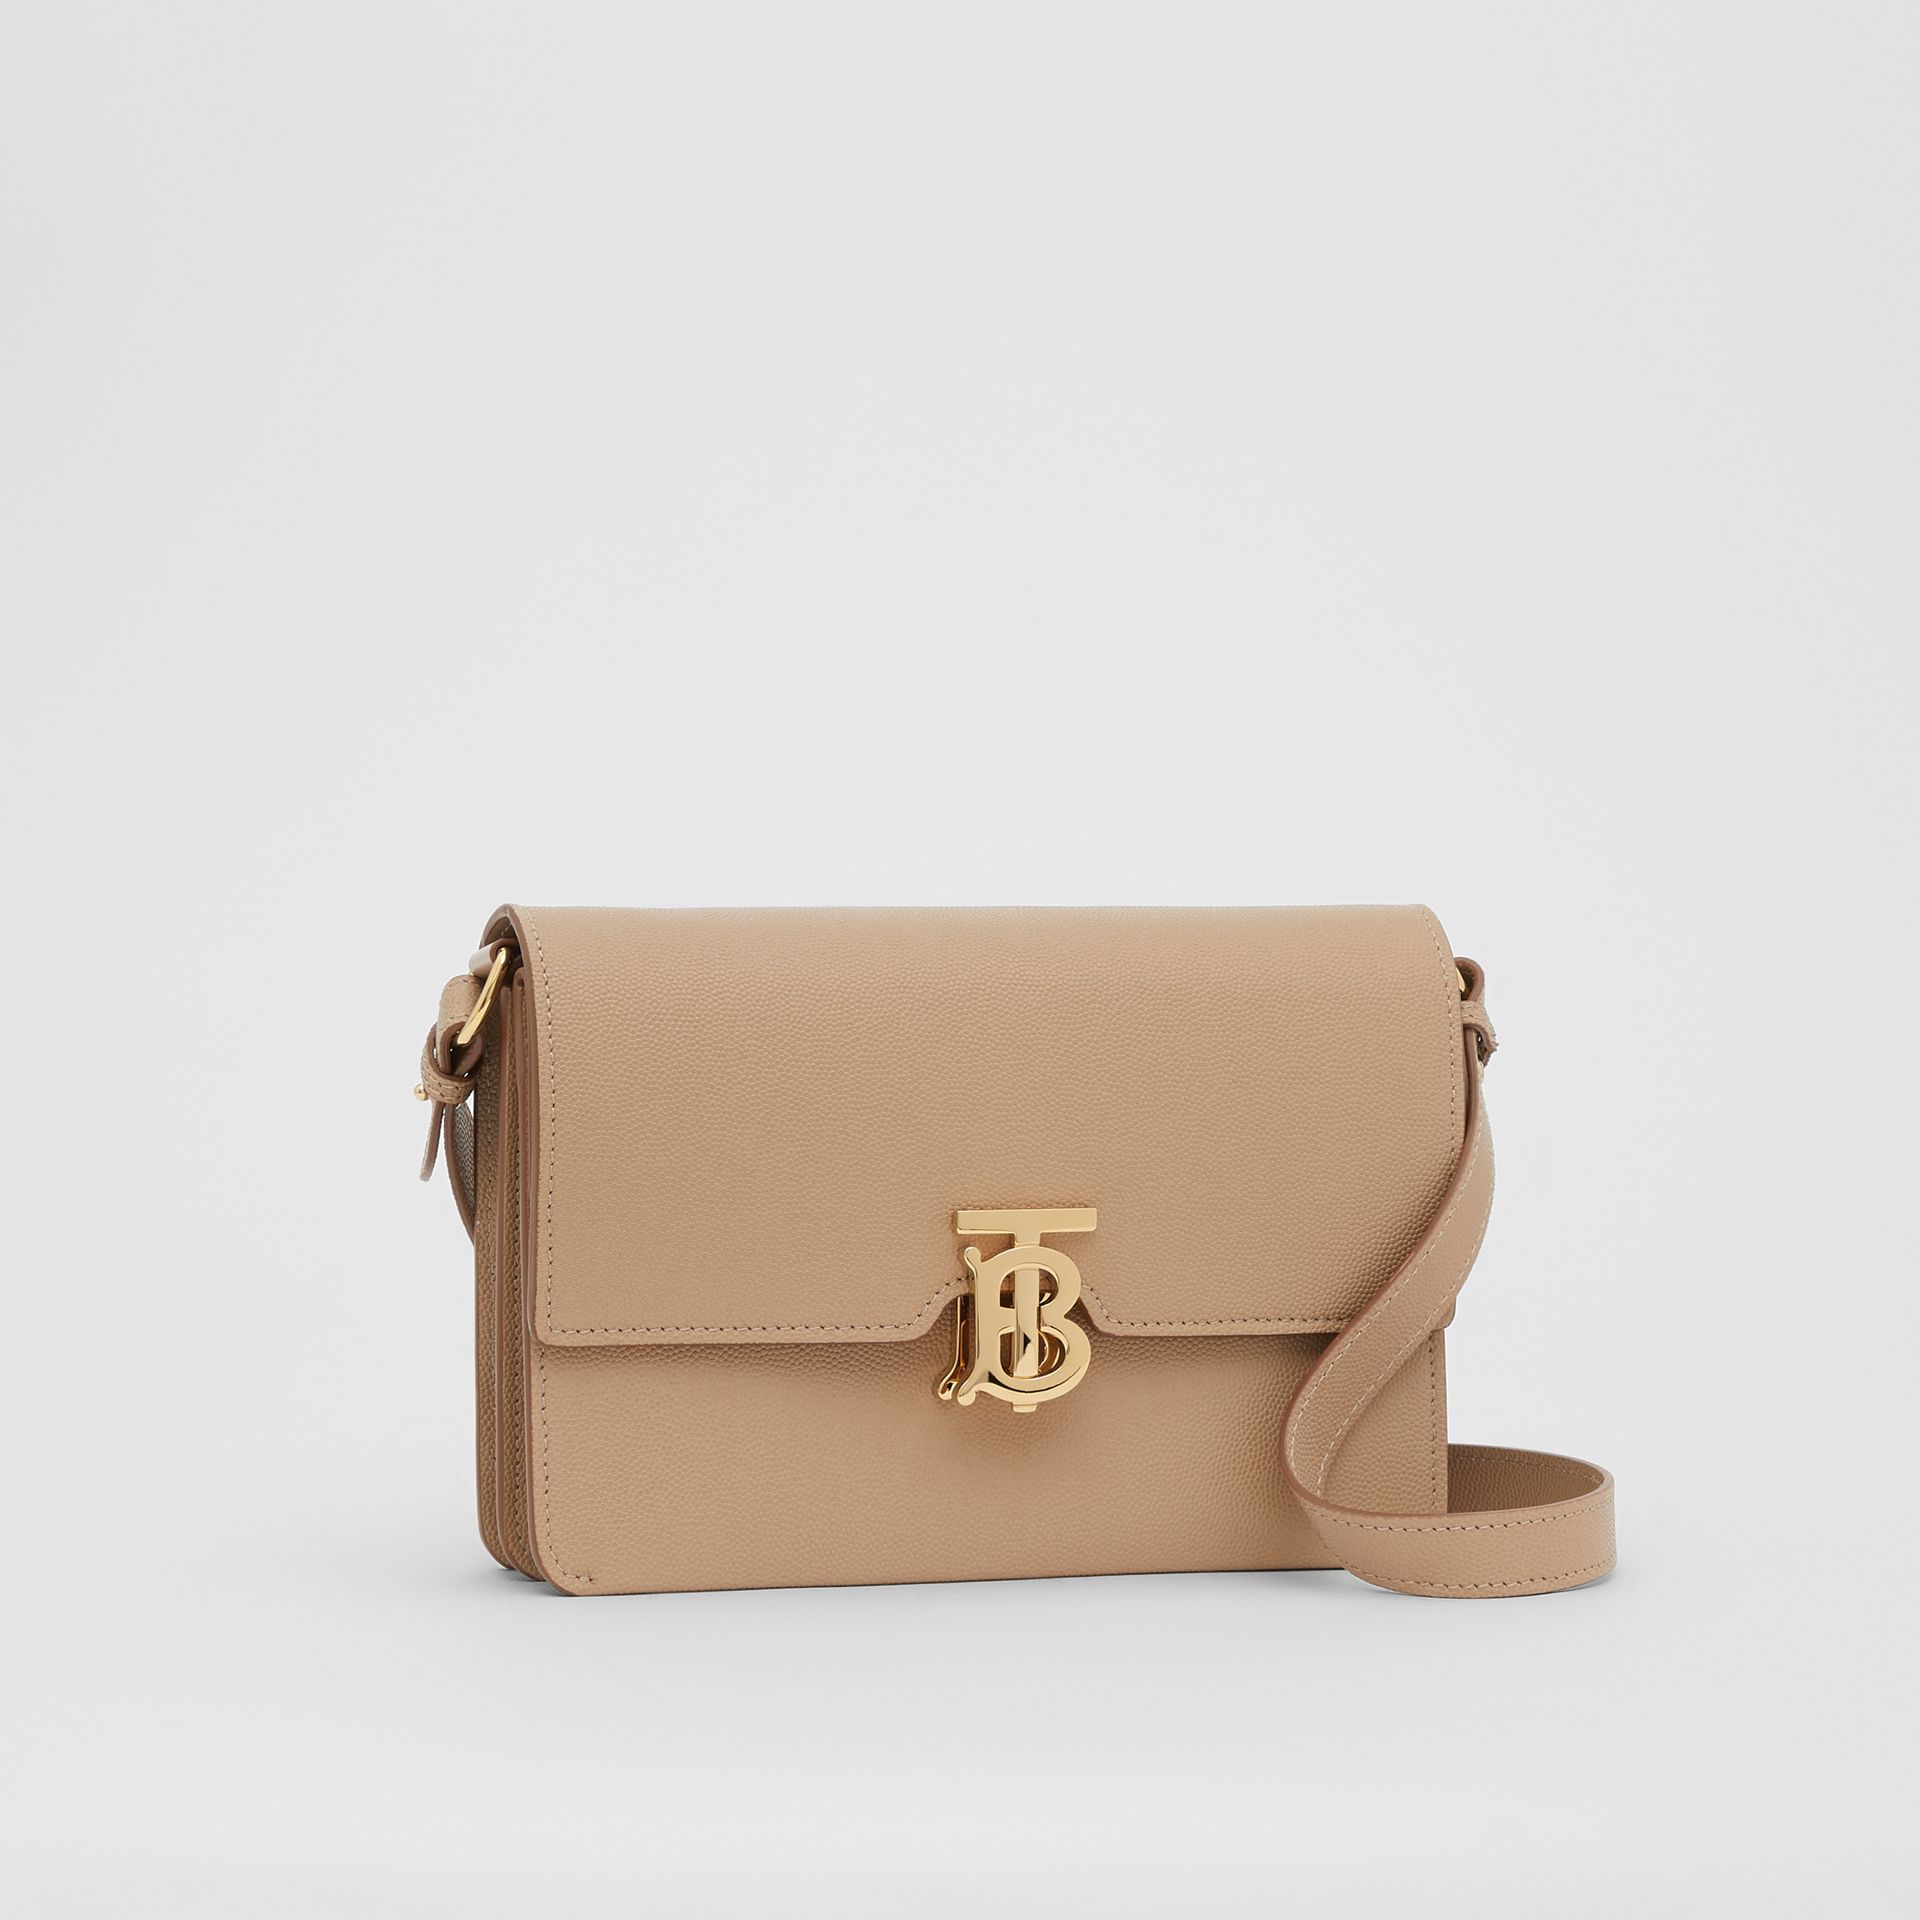 Small Monogram Motif Leather Crossbody Bag in Archive Beige - Women | Burberry - gallery image 4